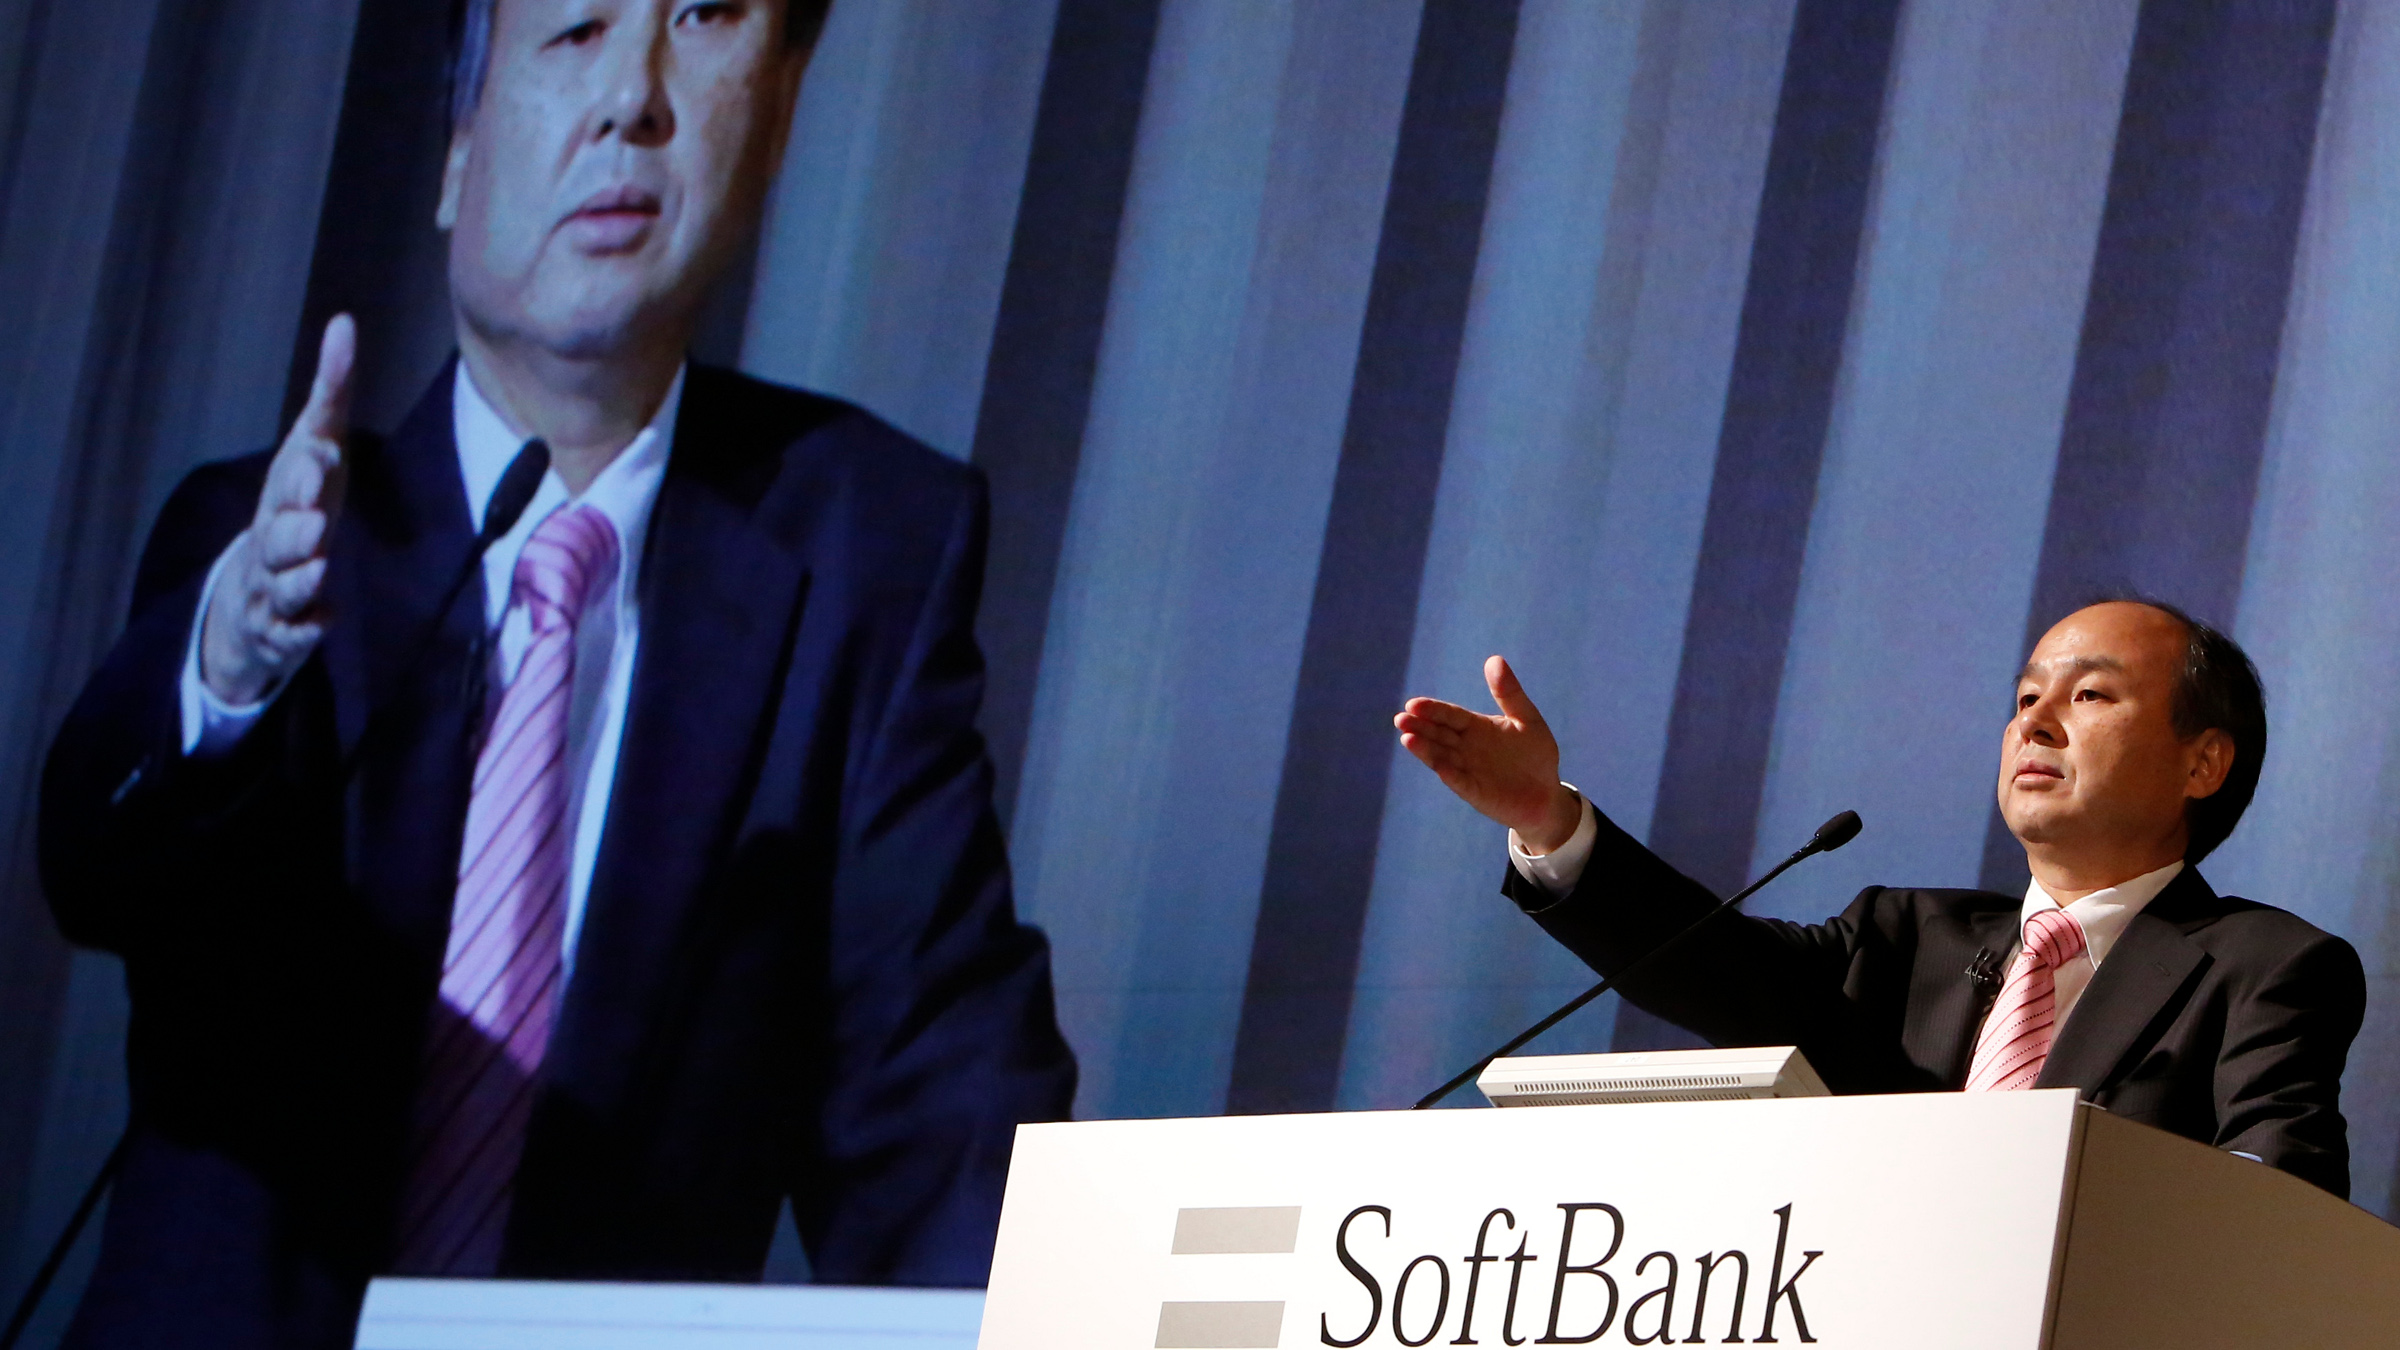 Softbank Corp CEO Masayoshi Son gestures towards a reporter during a news conference in Tokyo February 12, 2014. SoftBank Corp, which runs Japan's third-largest mobile carrier by subscriber numbers, reported a dip in third-quarter net profit after a string of acquisitions incurred steep integration costs.